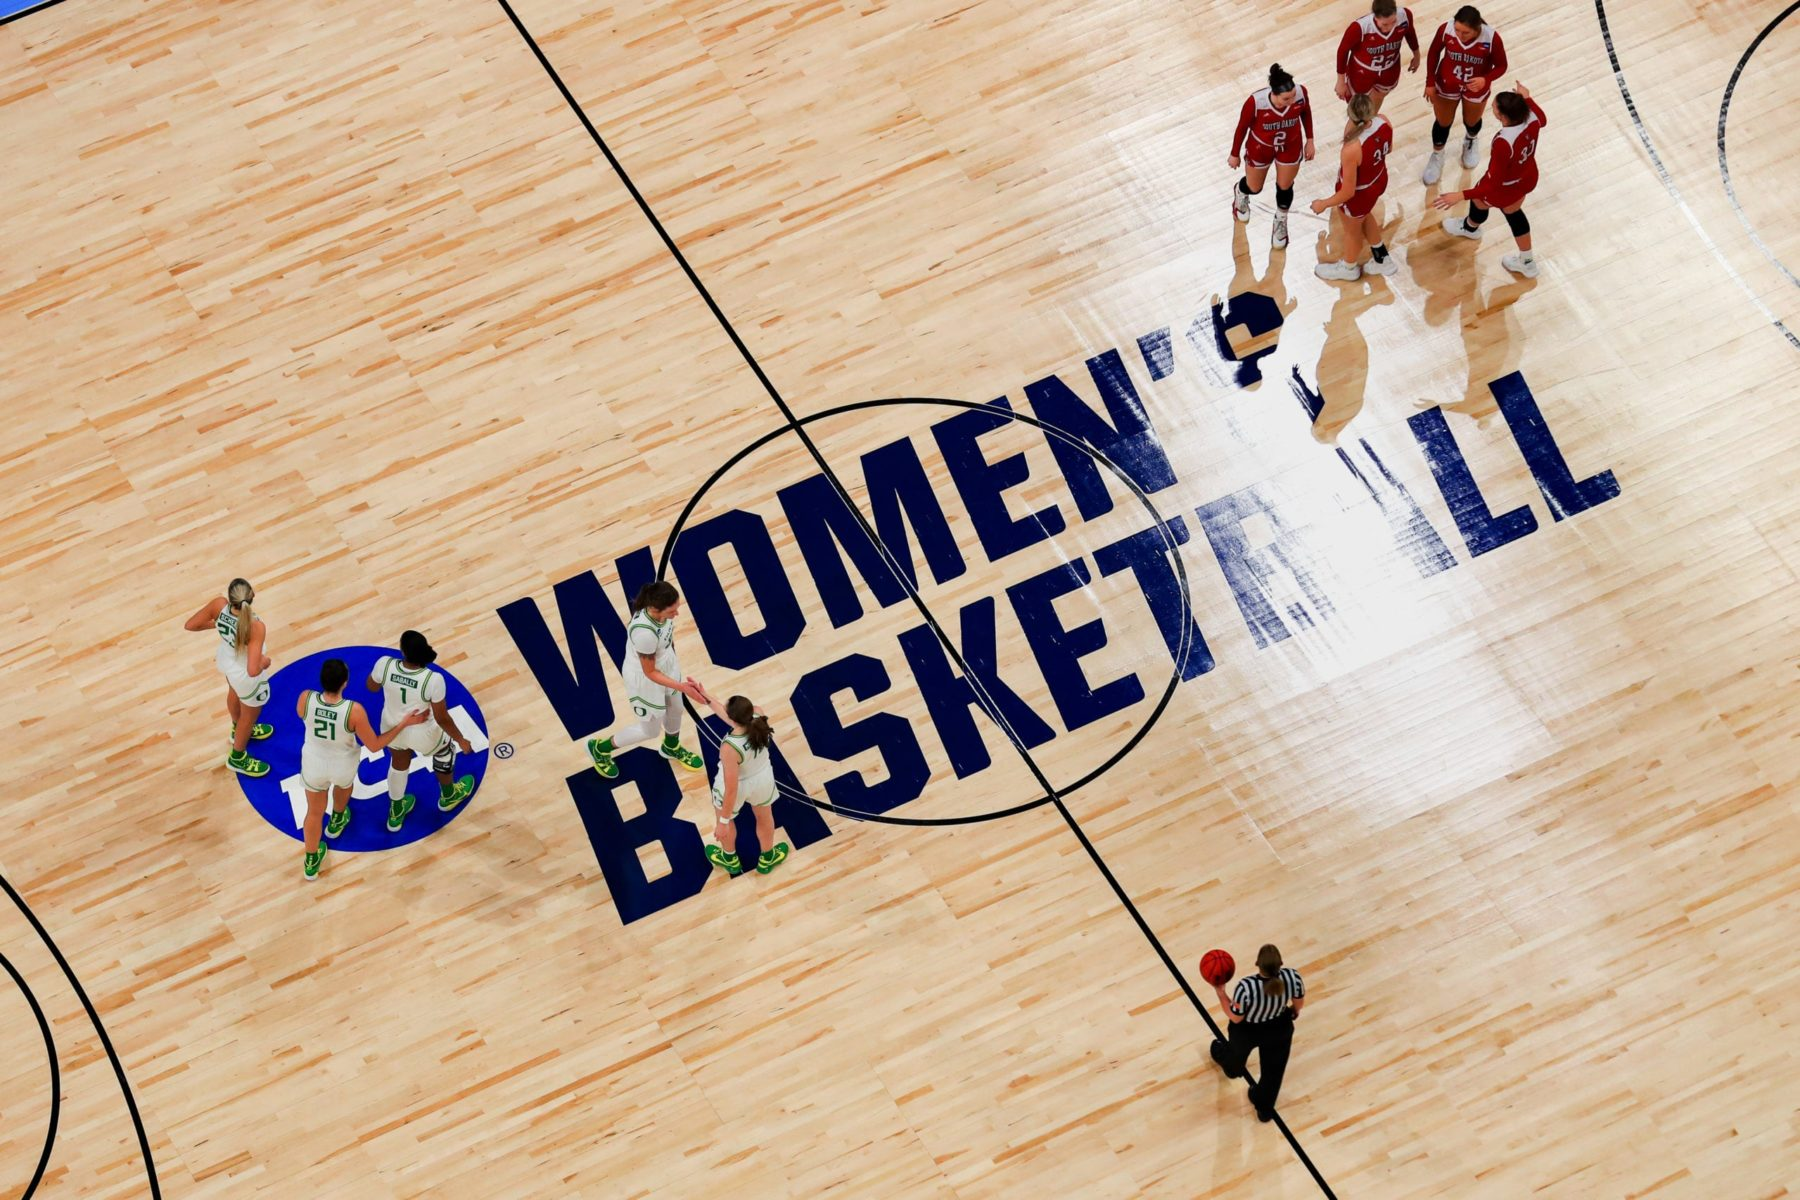 The South Dakota Coyotes and the Oregon Ducks in the first round game of the 2021 NCAA Women's Basketball Tournament at the Alamodome on March 22, 2021 in San Antonio, Texas.